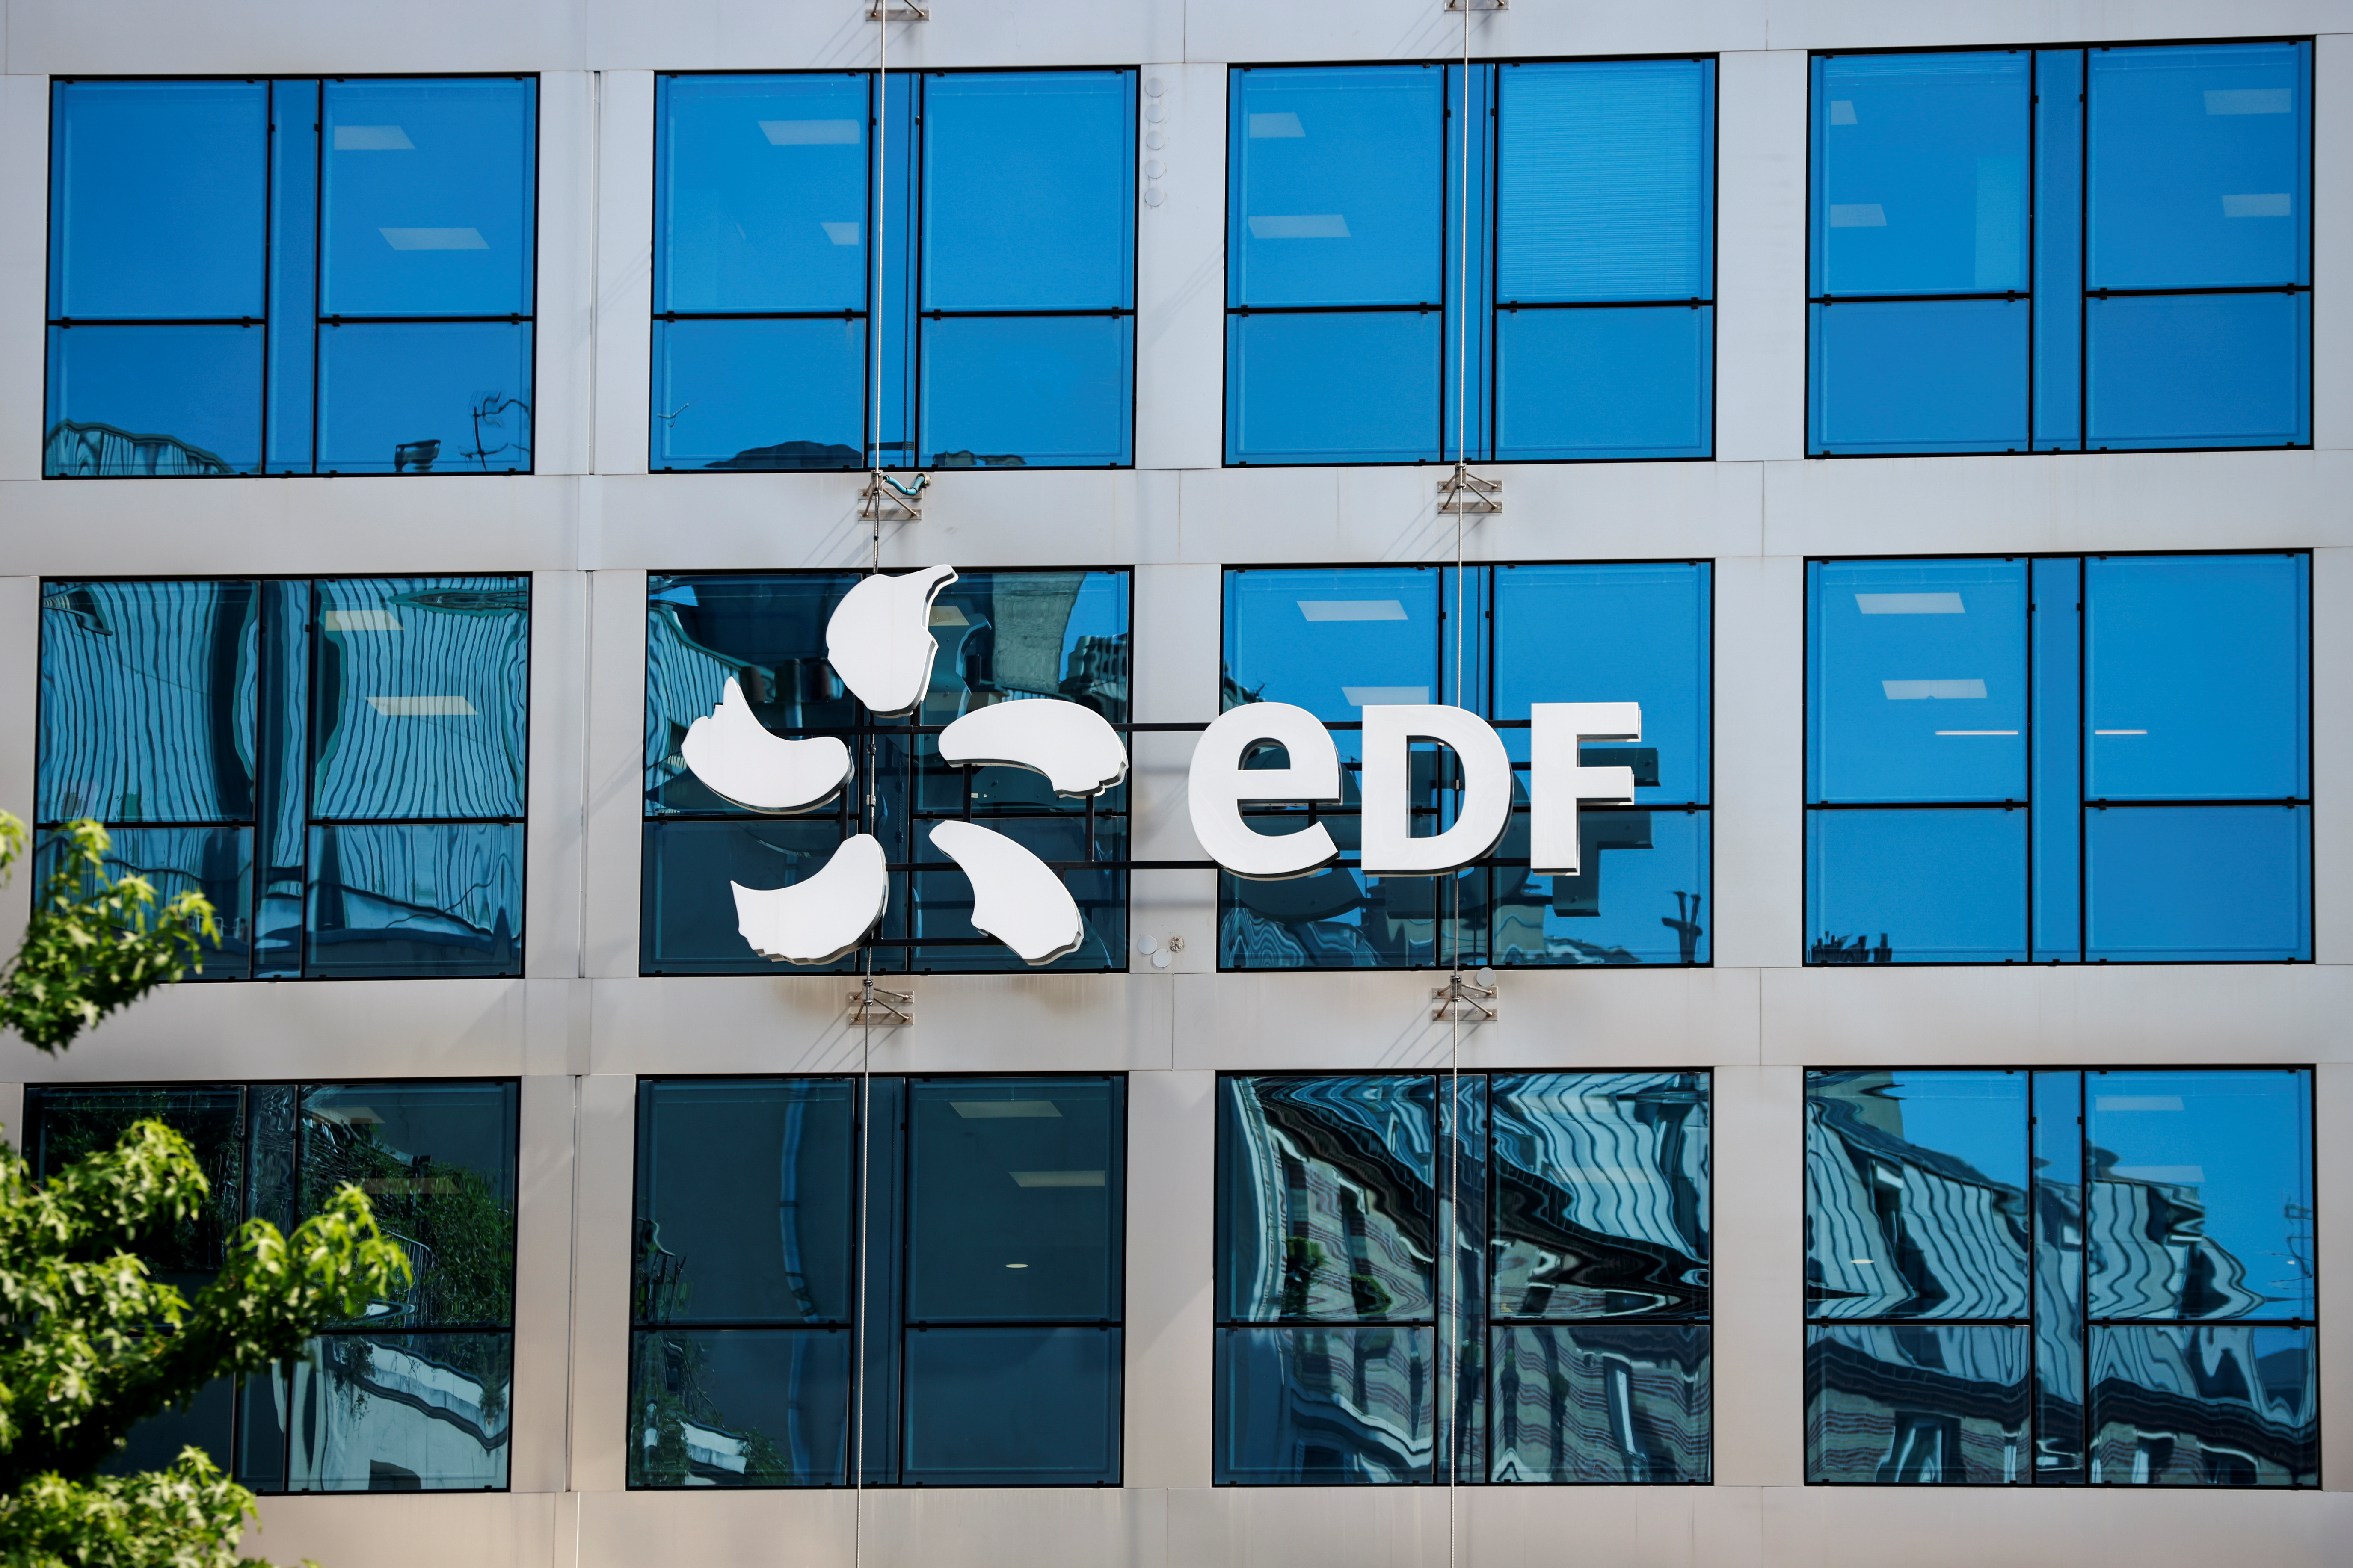 The company logo of Electricite de France (EDF) is seen on the facade of EDF's headquarters in Paris, France, July 22, 2021. REUTERS/Sarah Meyssonnier